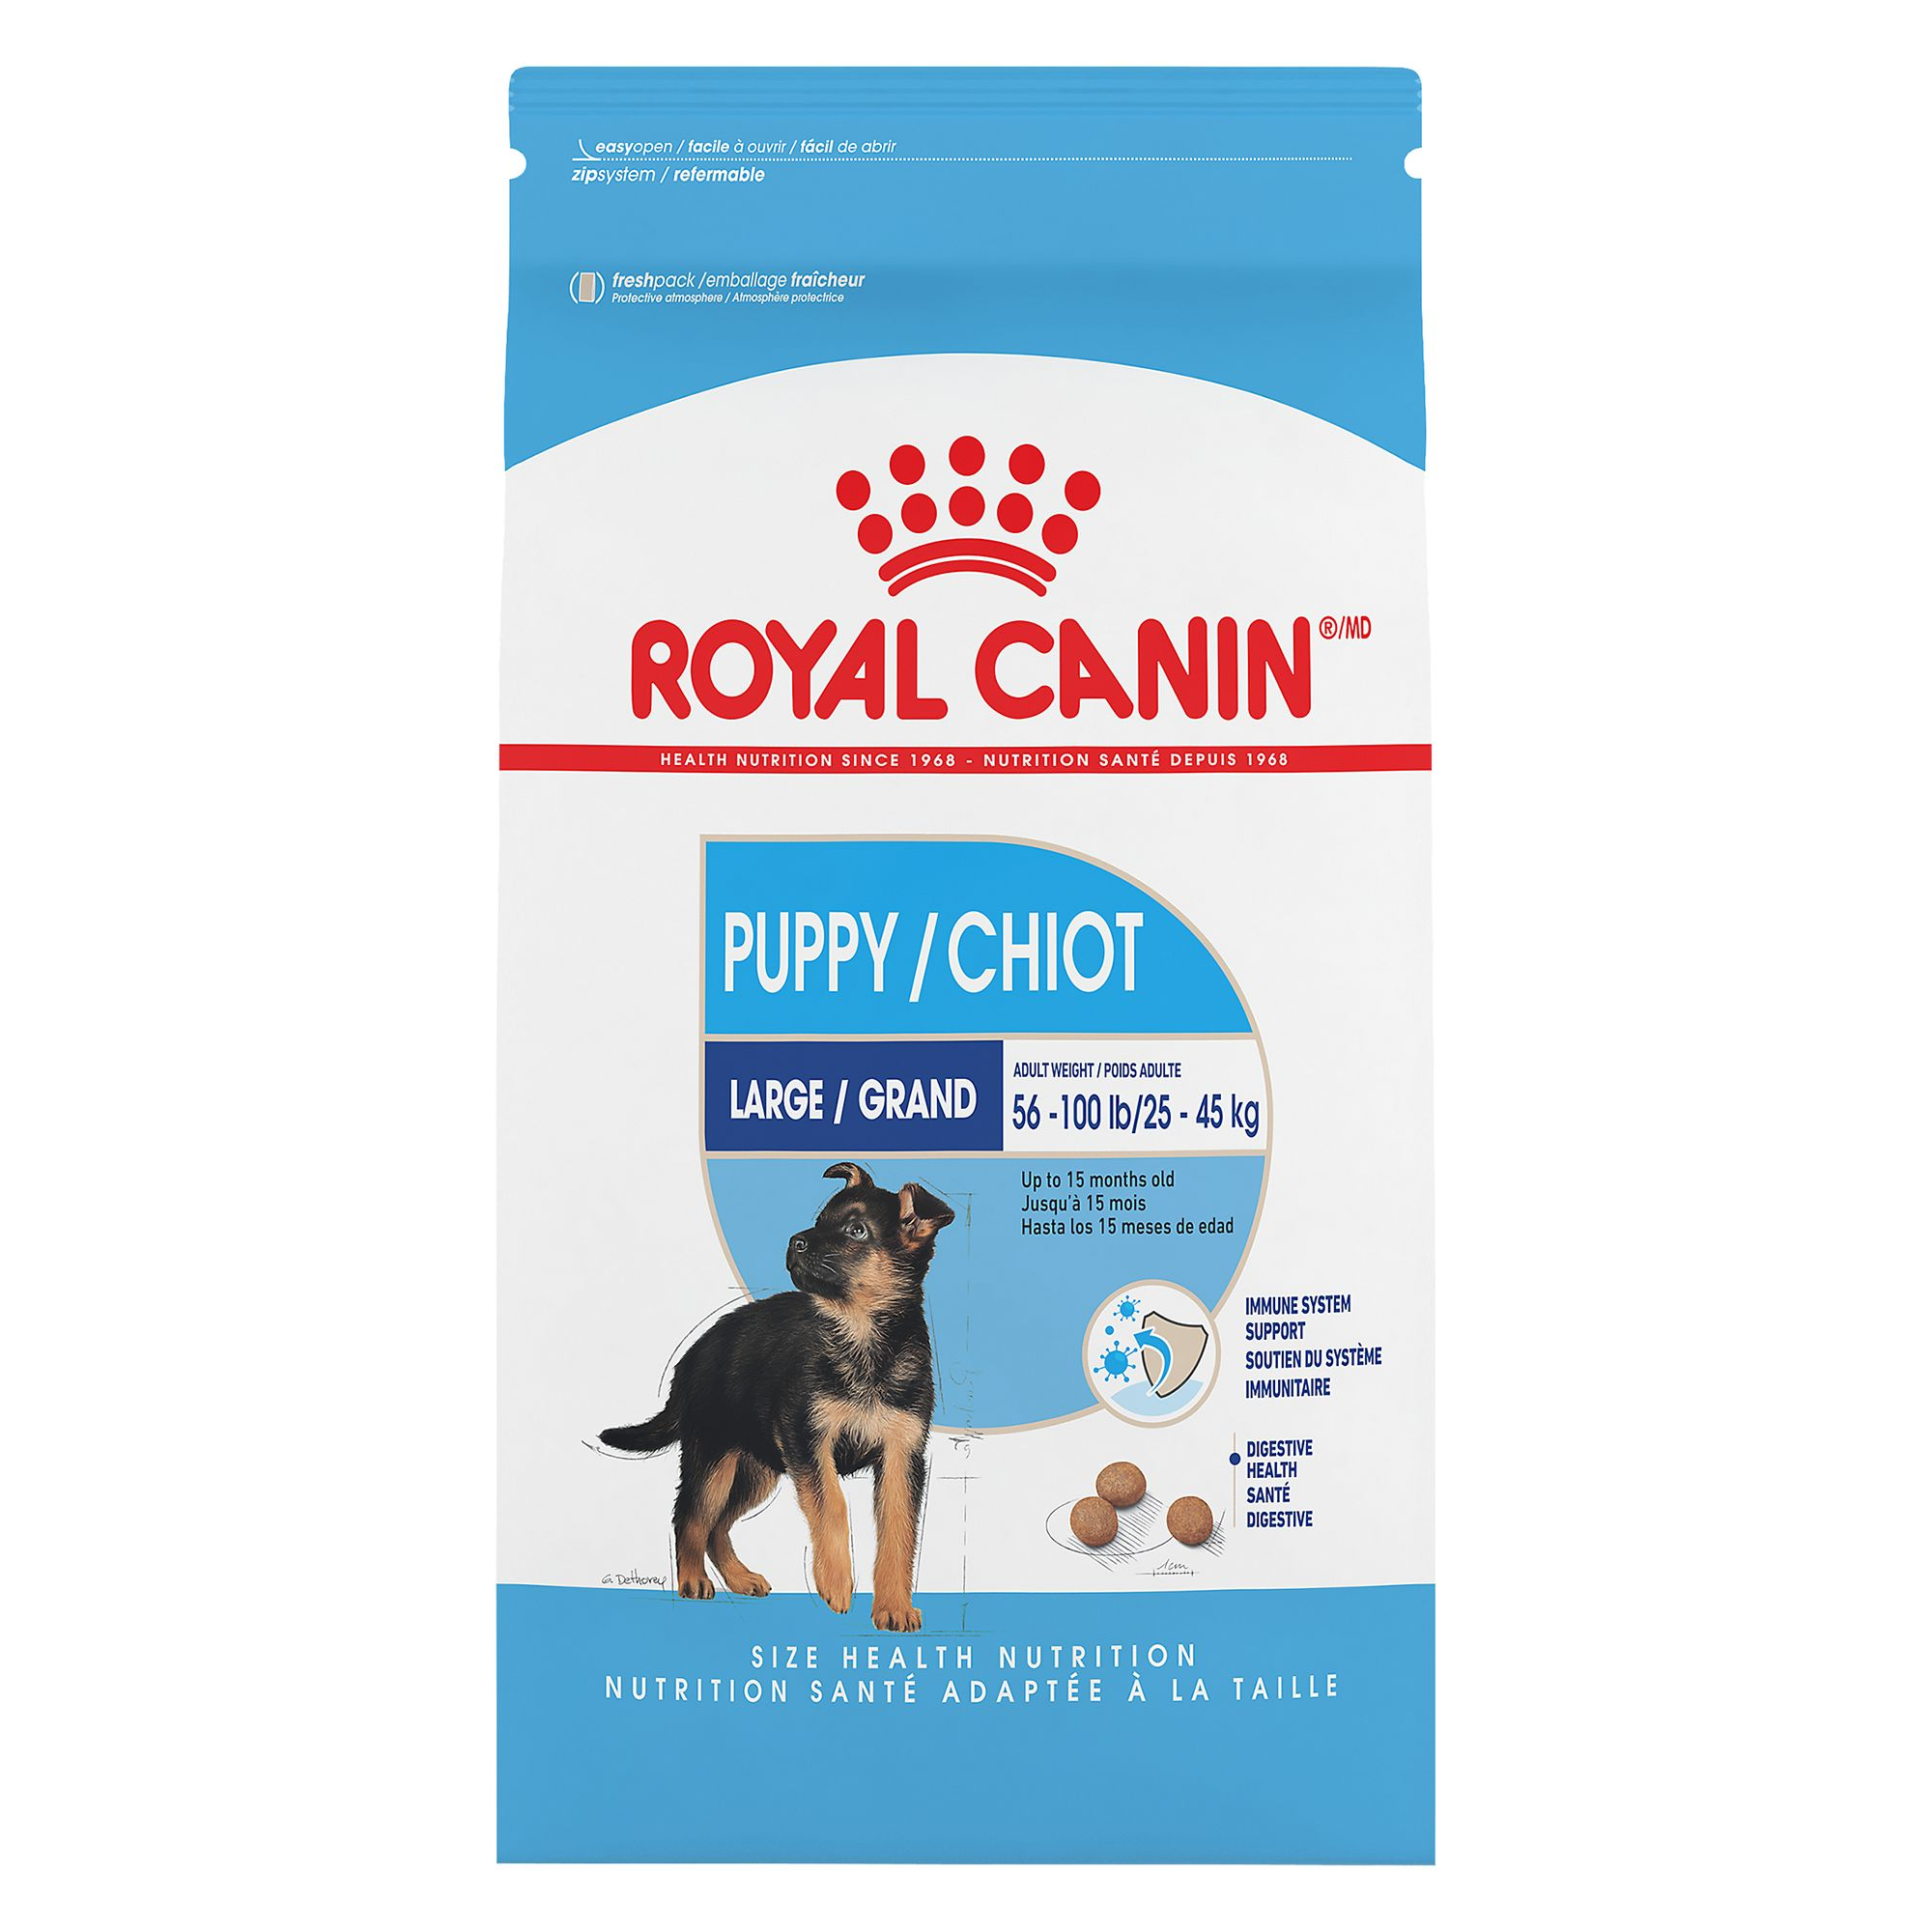 royal canin mini puppy digestive health wroc awski informator internetowy wroc aw wroclaw. Black Bedroom Furniture Sets. Home Design Ideas